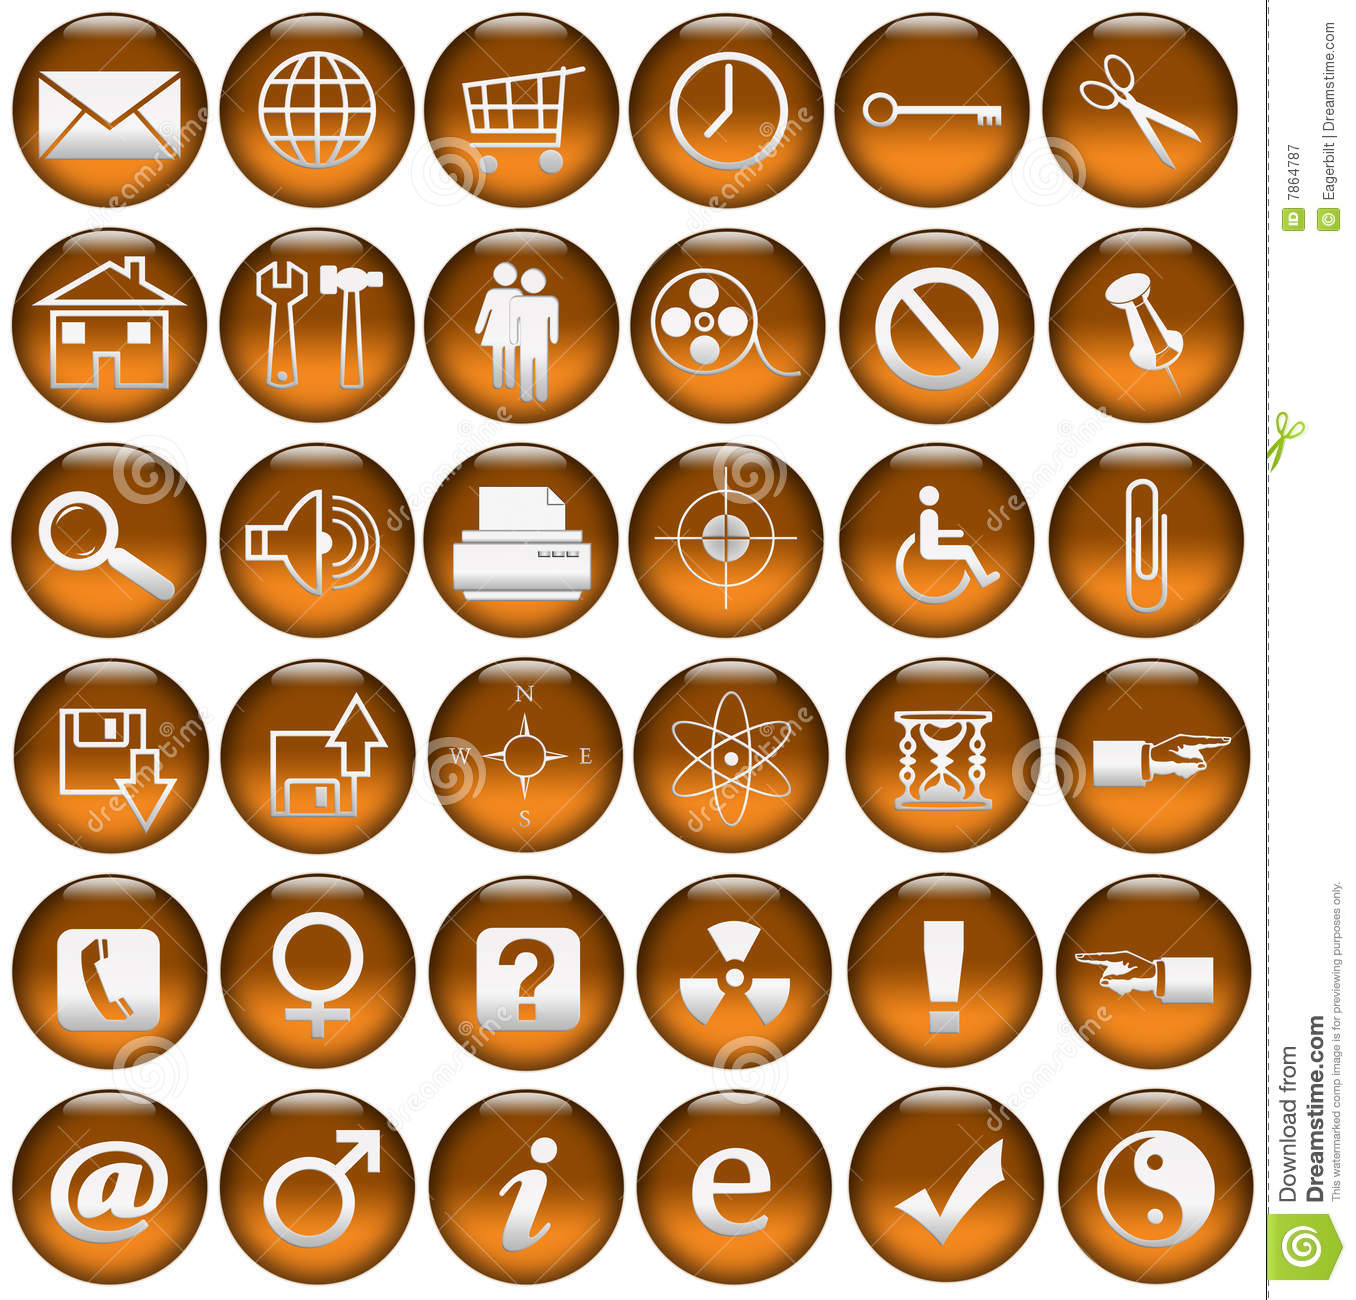 Blood Orange Web Icons/Buttons Royalty Free Stock Photography ...